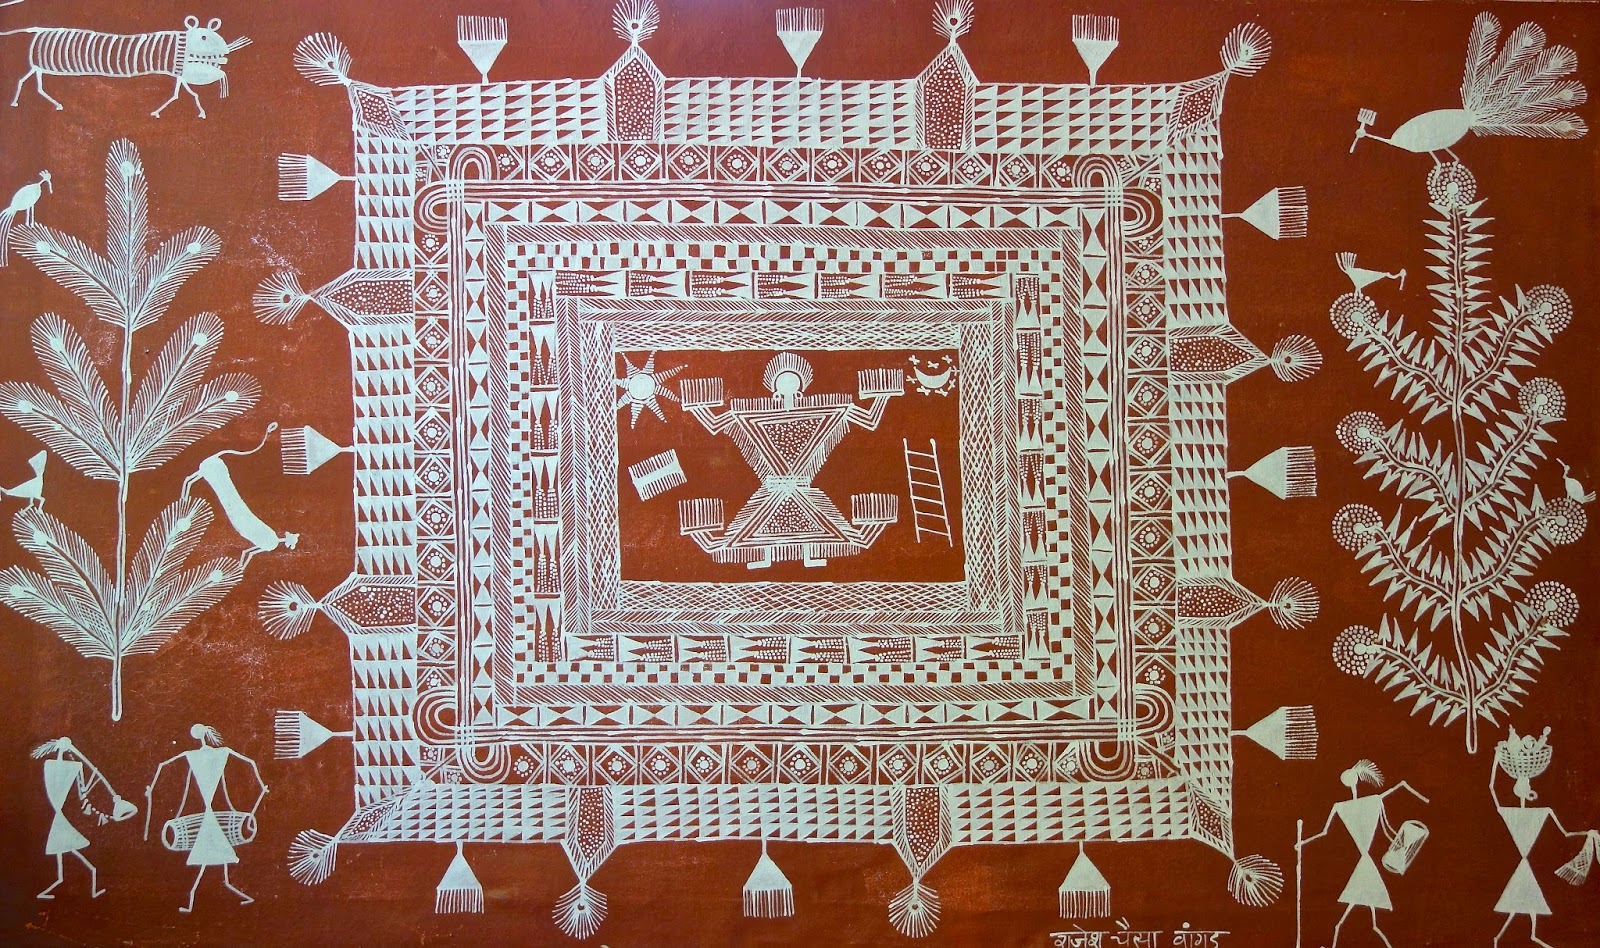 Art and Music of Warli tribals from Maharashtra